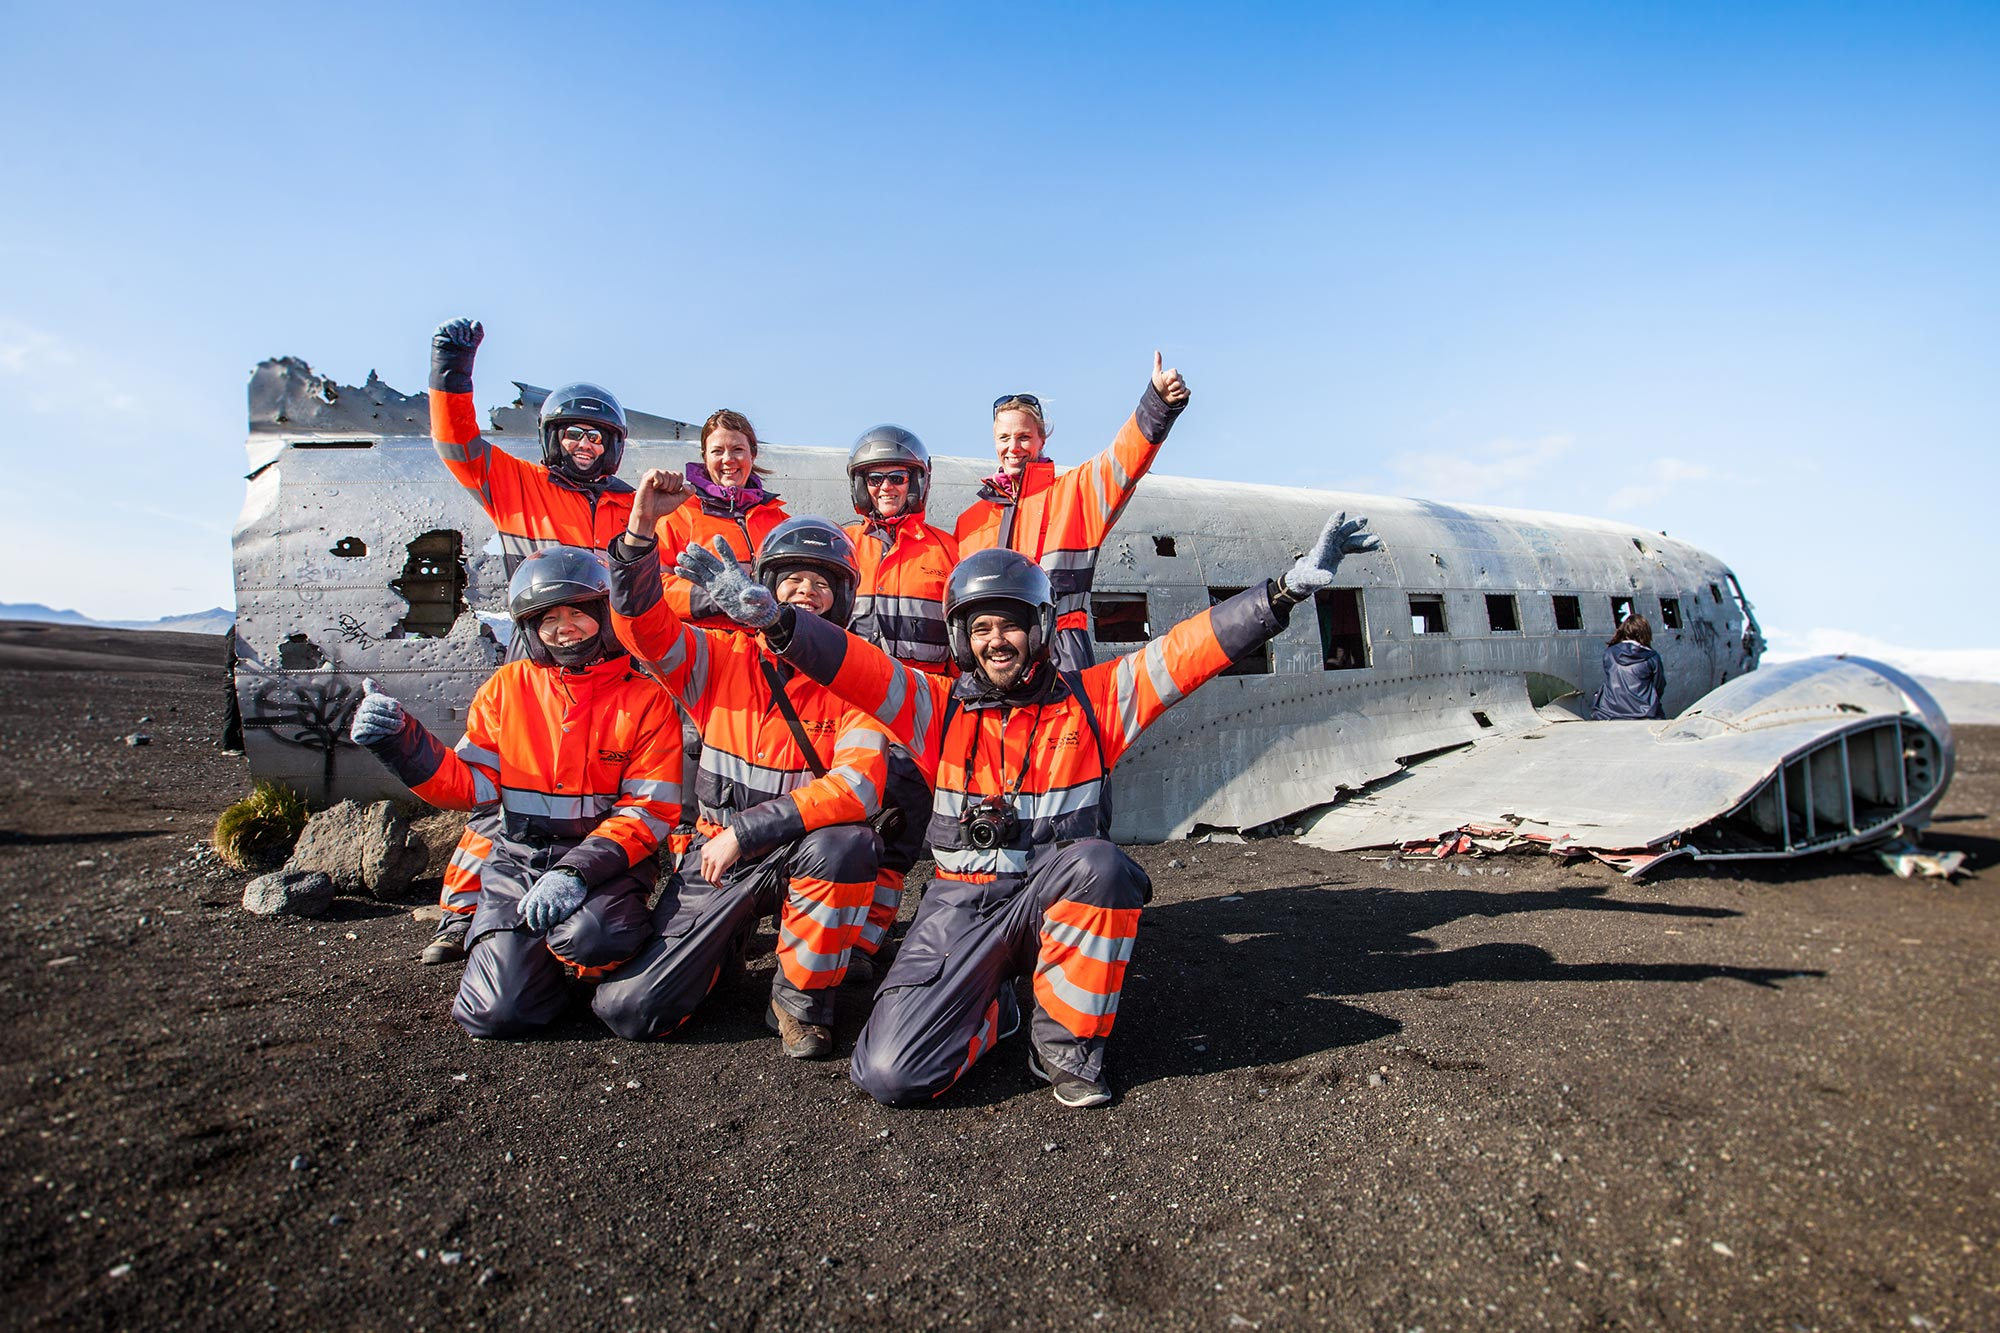 Visit the DC Plane Wreck on Iceland's South Coast on this thrilling tour.